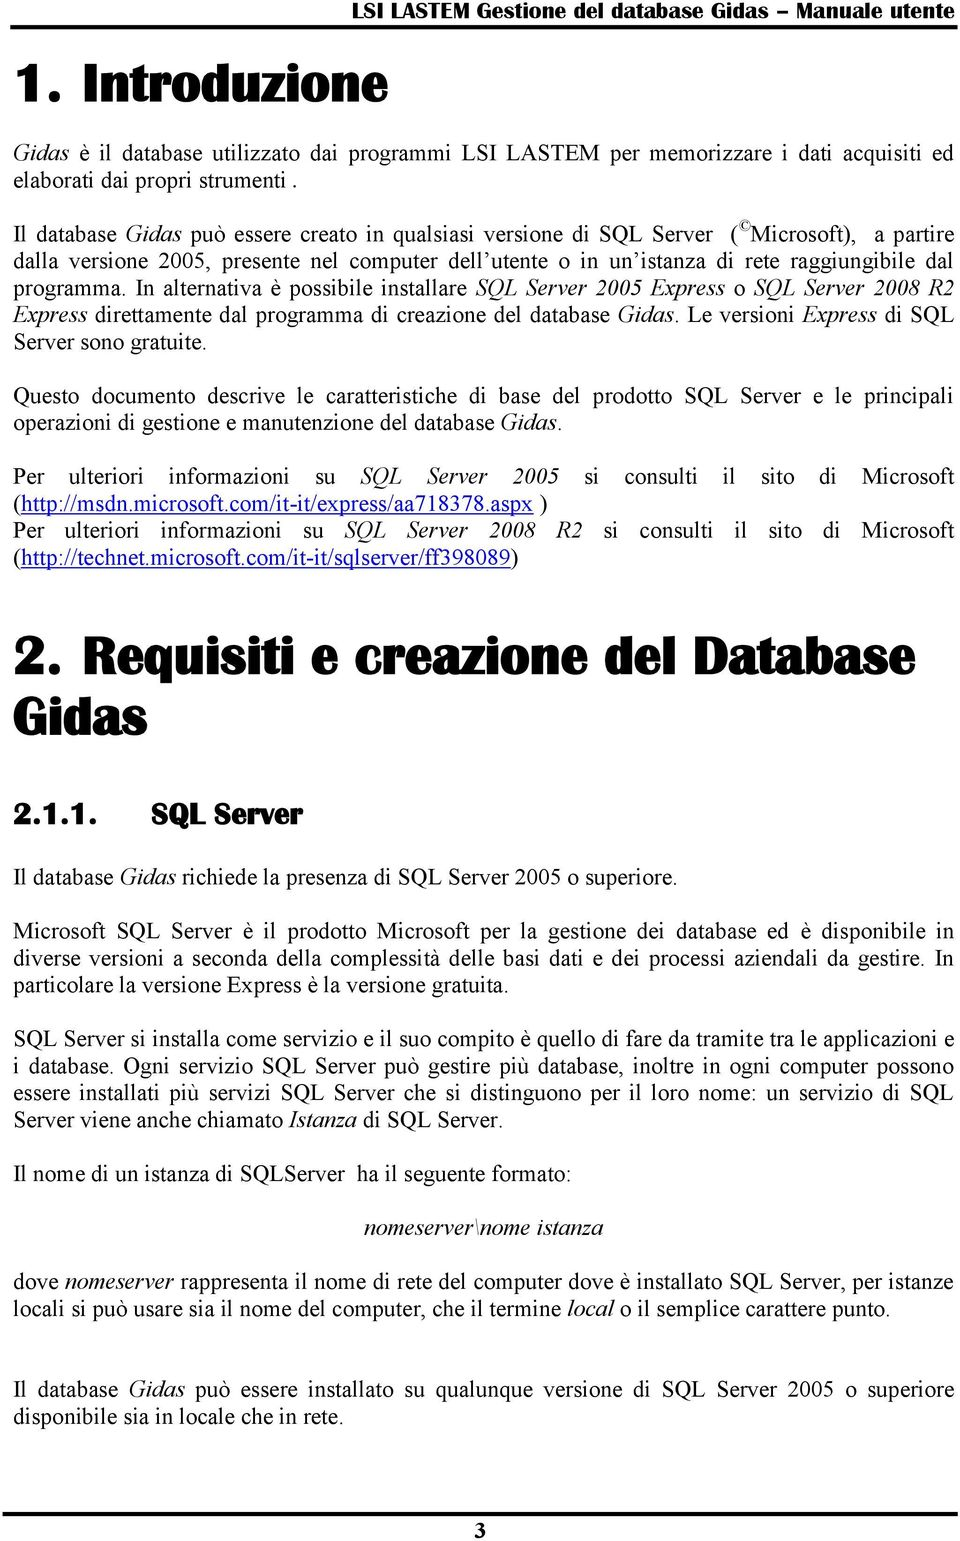 programma. In alternativa è possibile installare SQL Server 2005 Express o SQL Server 2008 R2 Express direttamente dal programma di creazione del database Gidas.